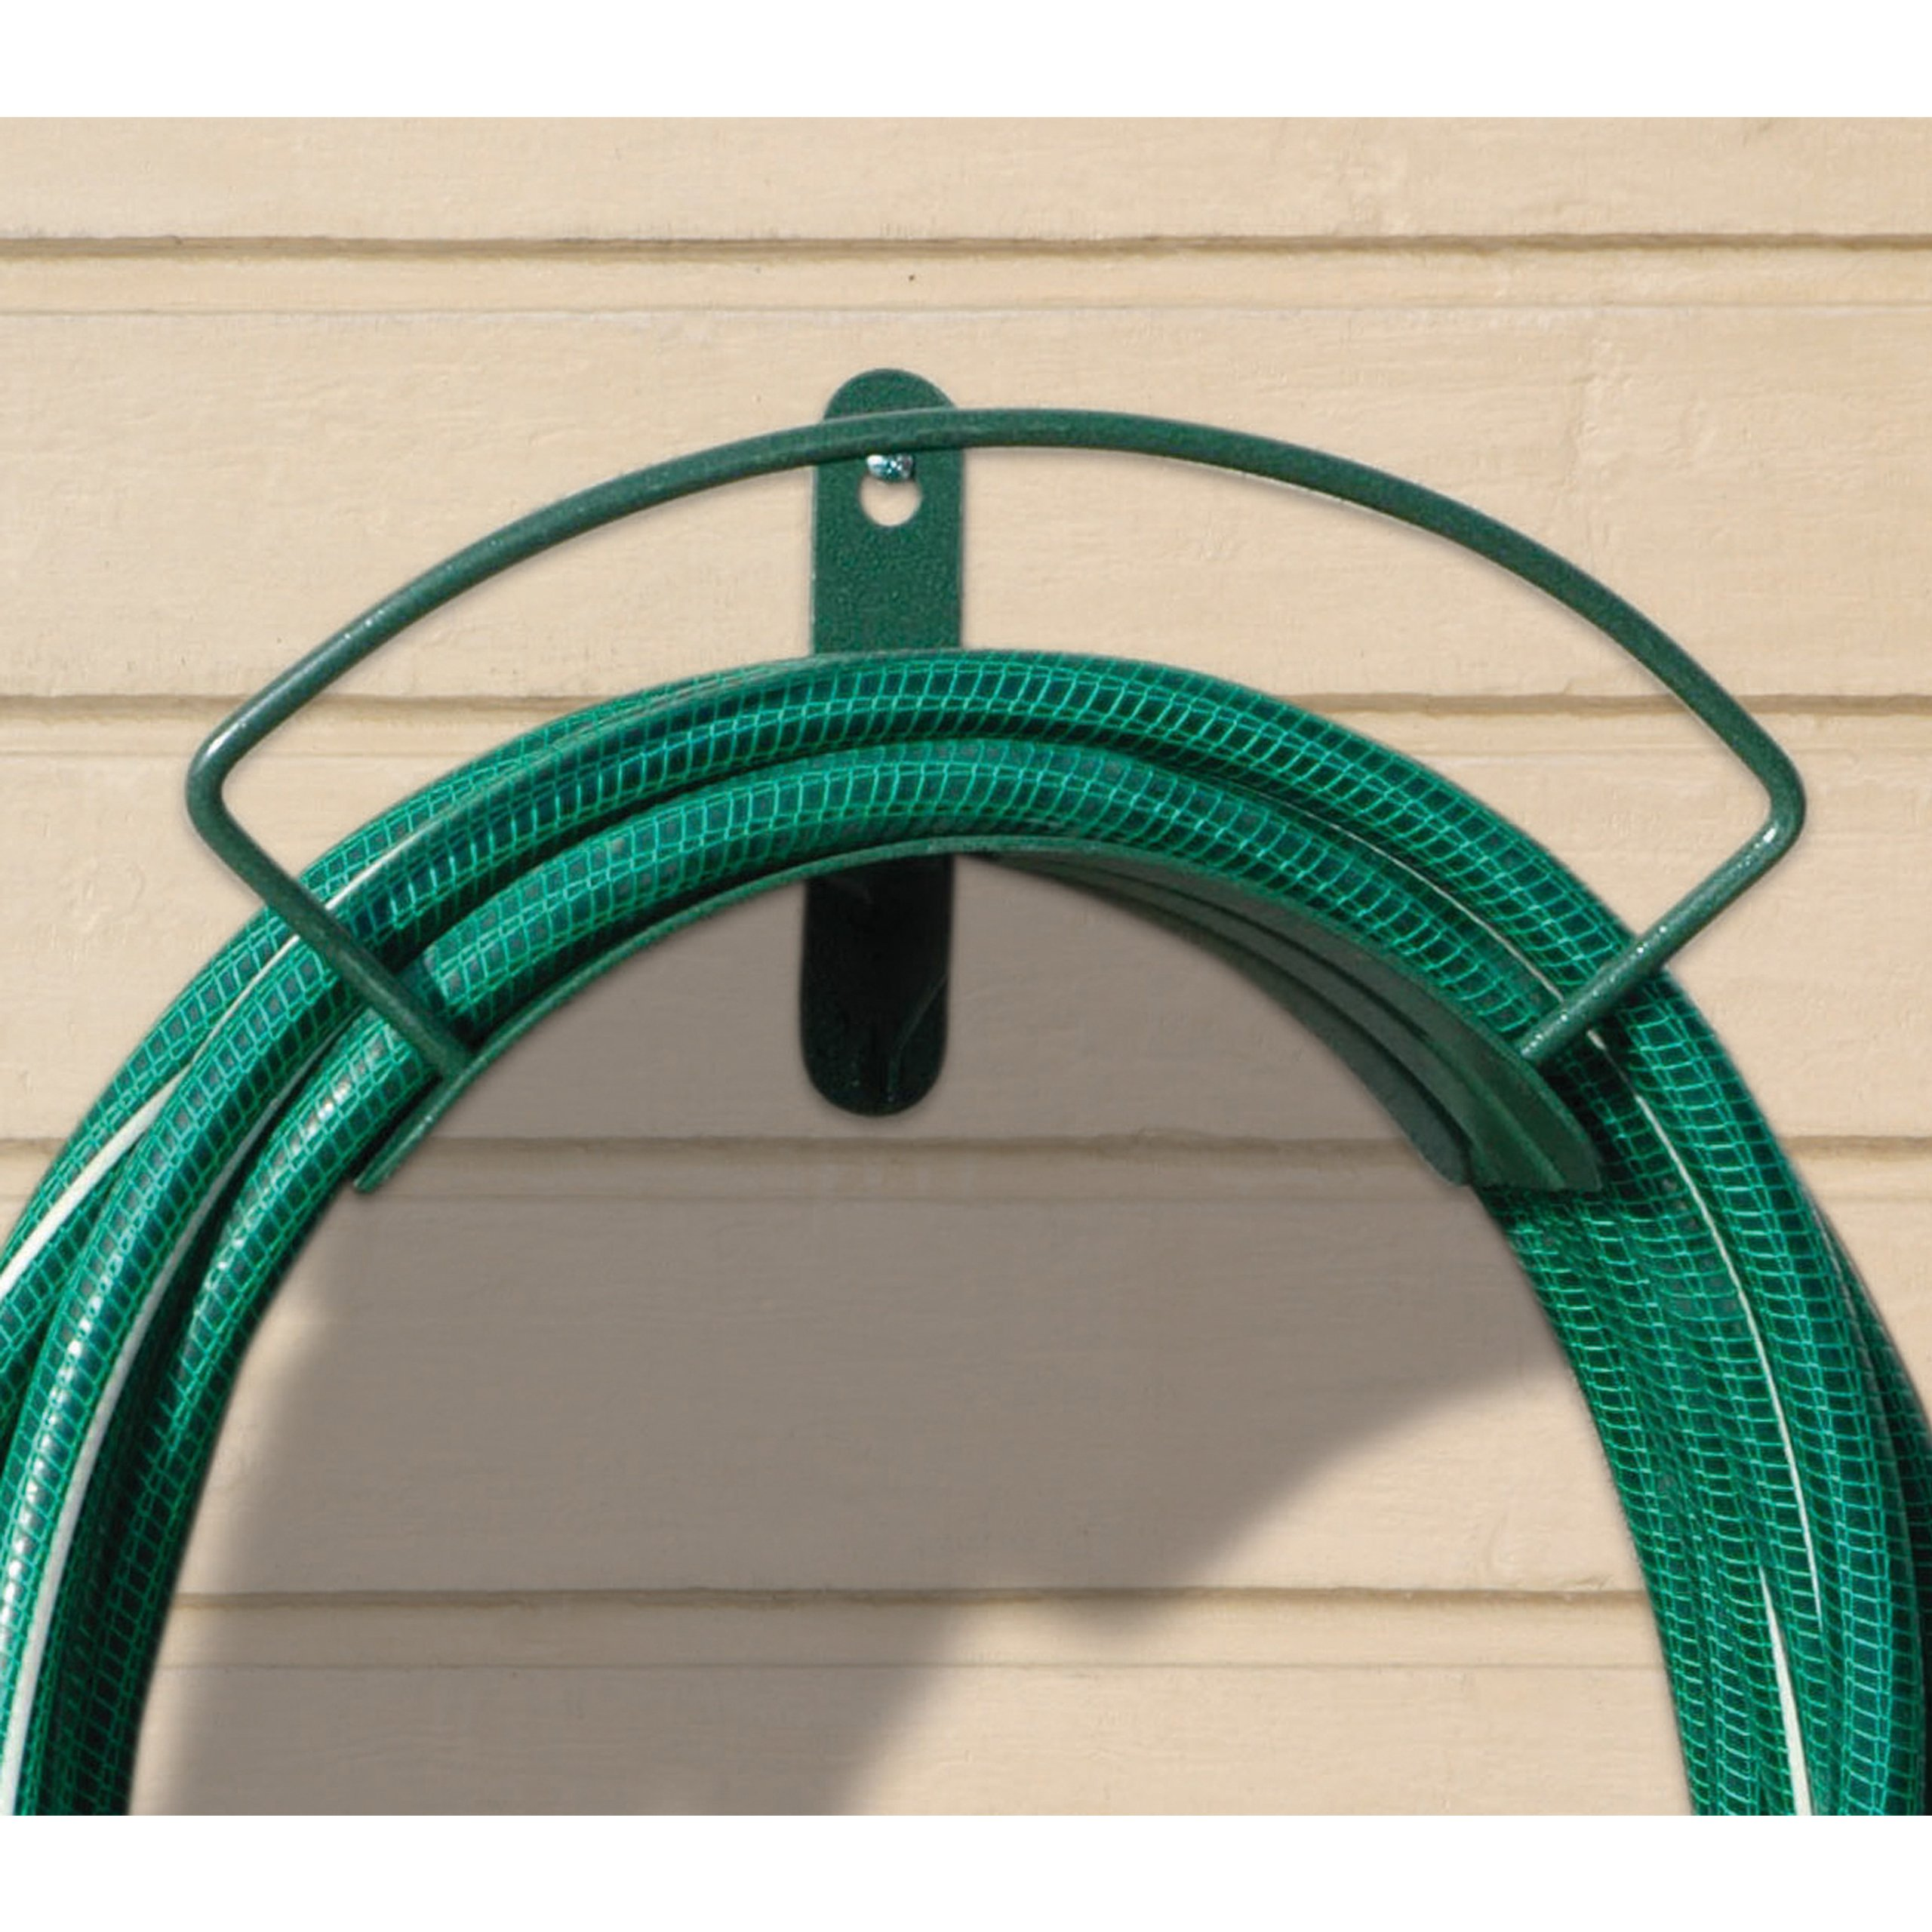 Yard Butler Deluxe Heavy Duty Wall Mount Hose Hanger Easily Holds 100' Of 5/8' Hose Solid Steel Extra Bracing And Patented Design In and DECORATIVE DESIGNS IHCWM-1 Textured Forest Green by Yard Butler (Image #4)